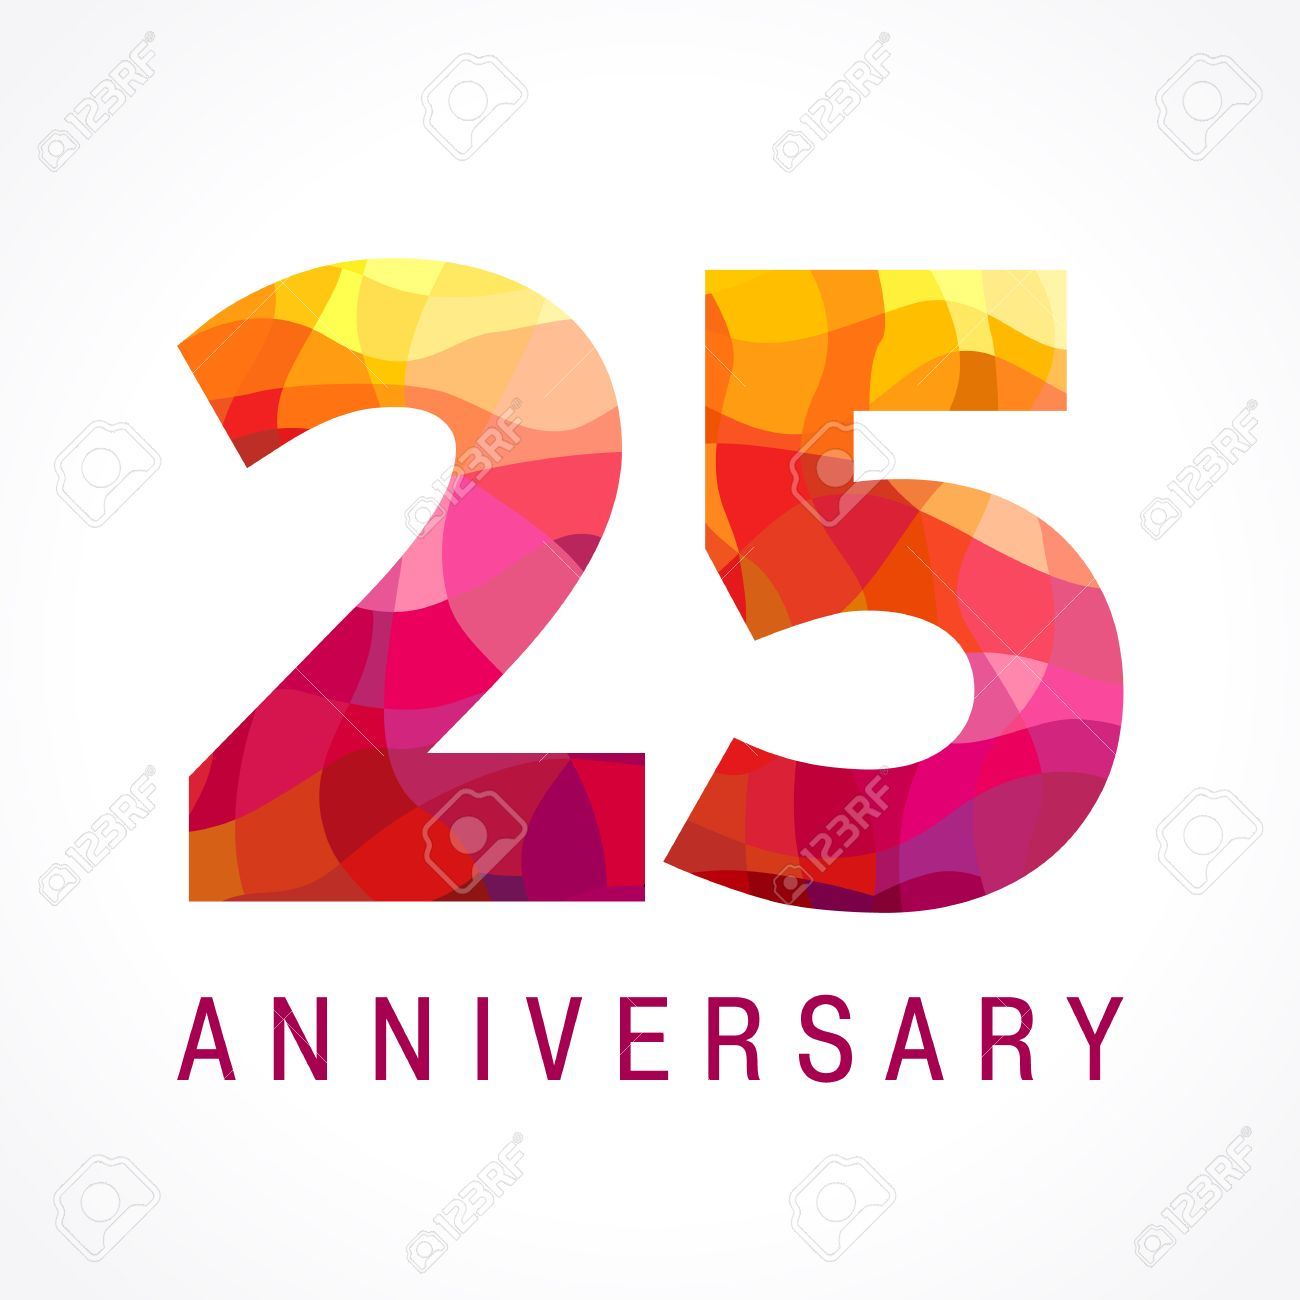 25 years old celebrating fiery logo anniversary flamed year rh 123rf com 25 years logo vector 25 years logo images